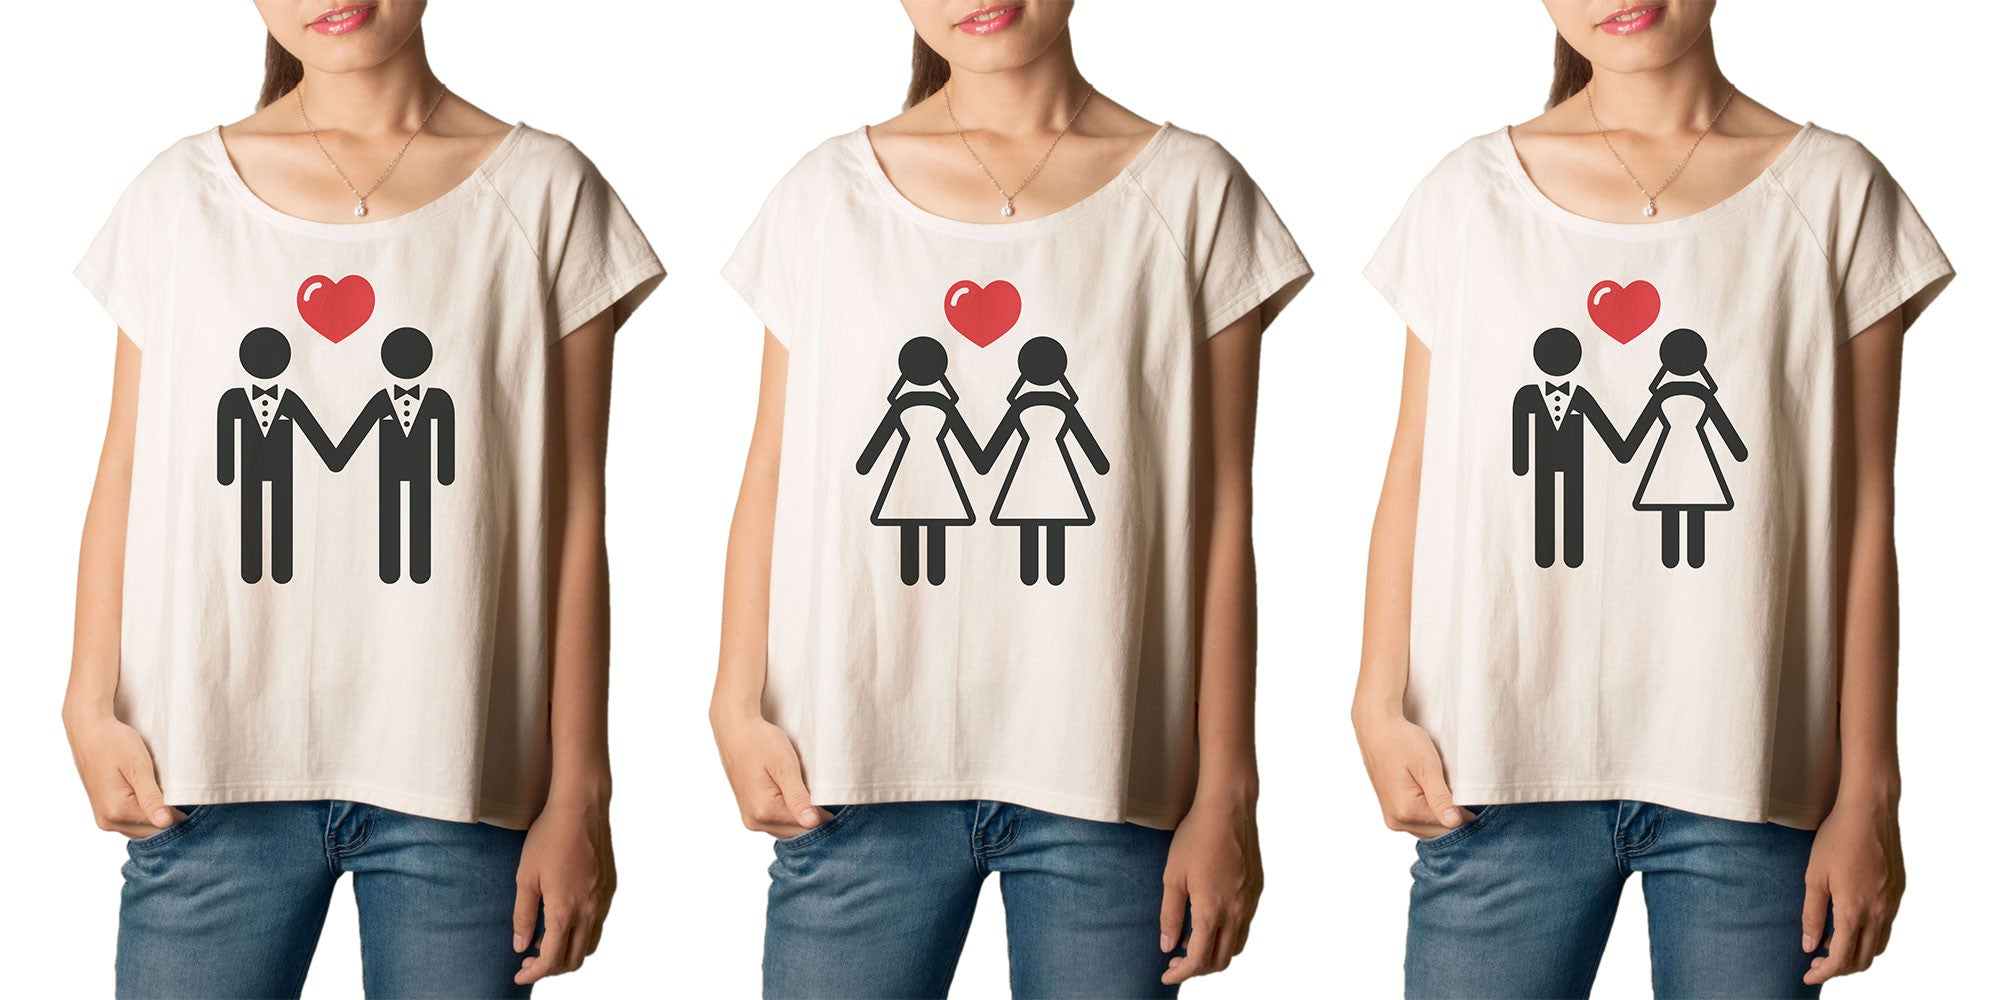 Women's  Gay Marriage Printed cotton T-shirt  Tee WTS_01